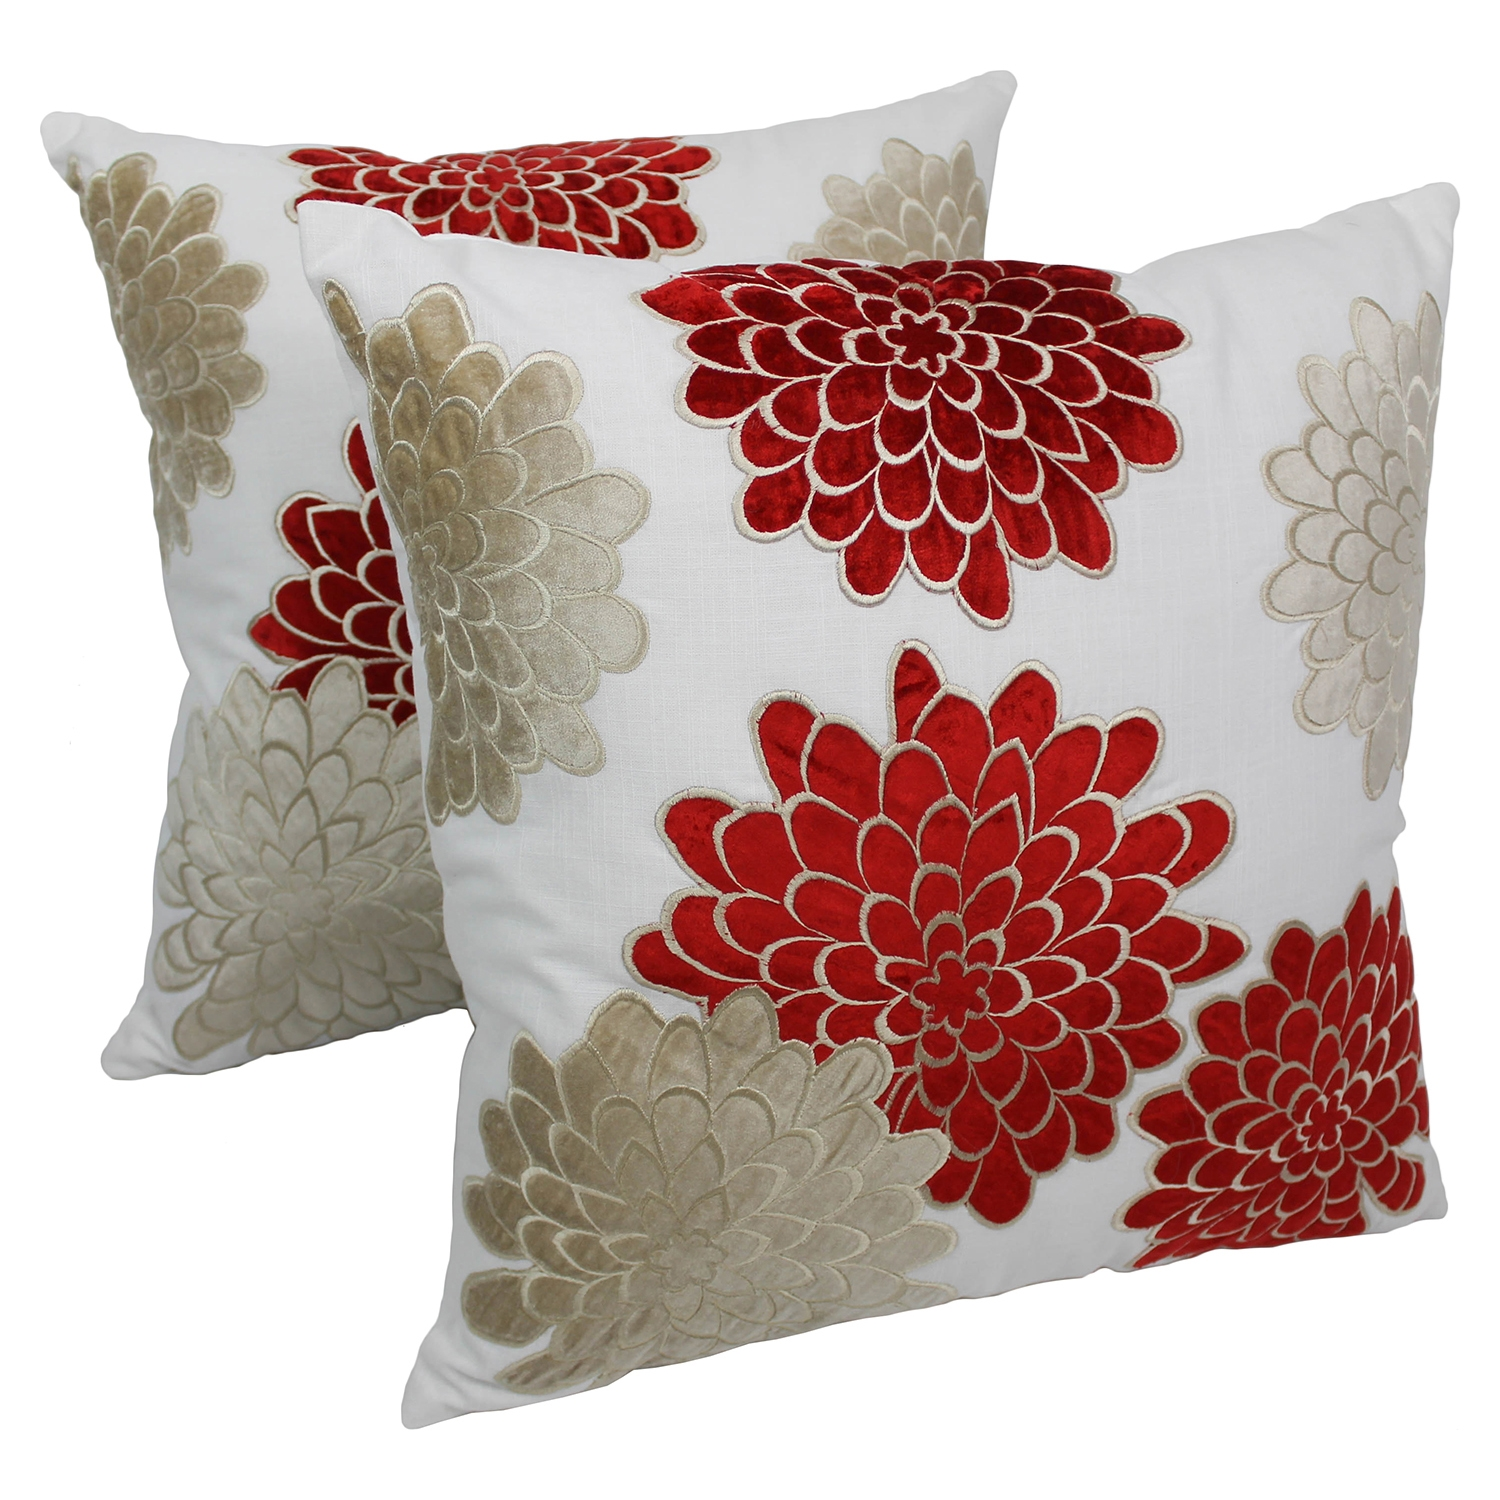 "Floral Bursts 20"" Throw Pillowss in Crimson and Beige Velvet, Ivory Fabric (Set of 2) - BLZ-FL-4-20-S2-CR-BE"